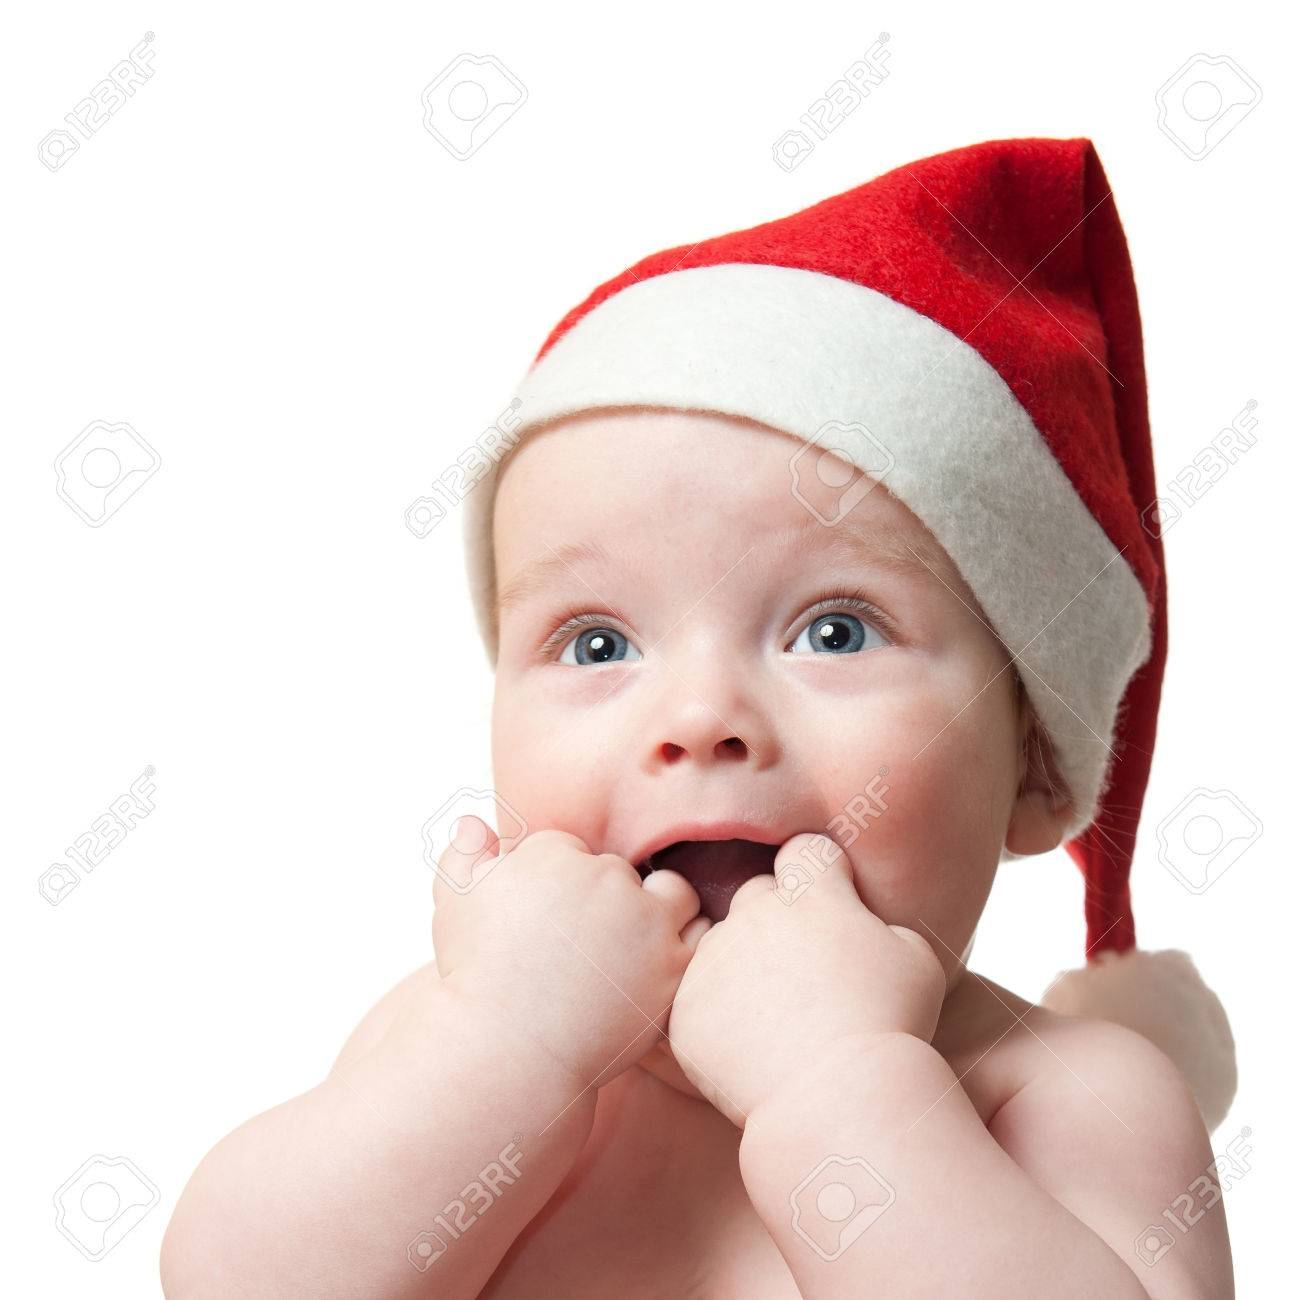 f1b99d96c Portrait of cute baby boy in Christmas hat, isolated on white..